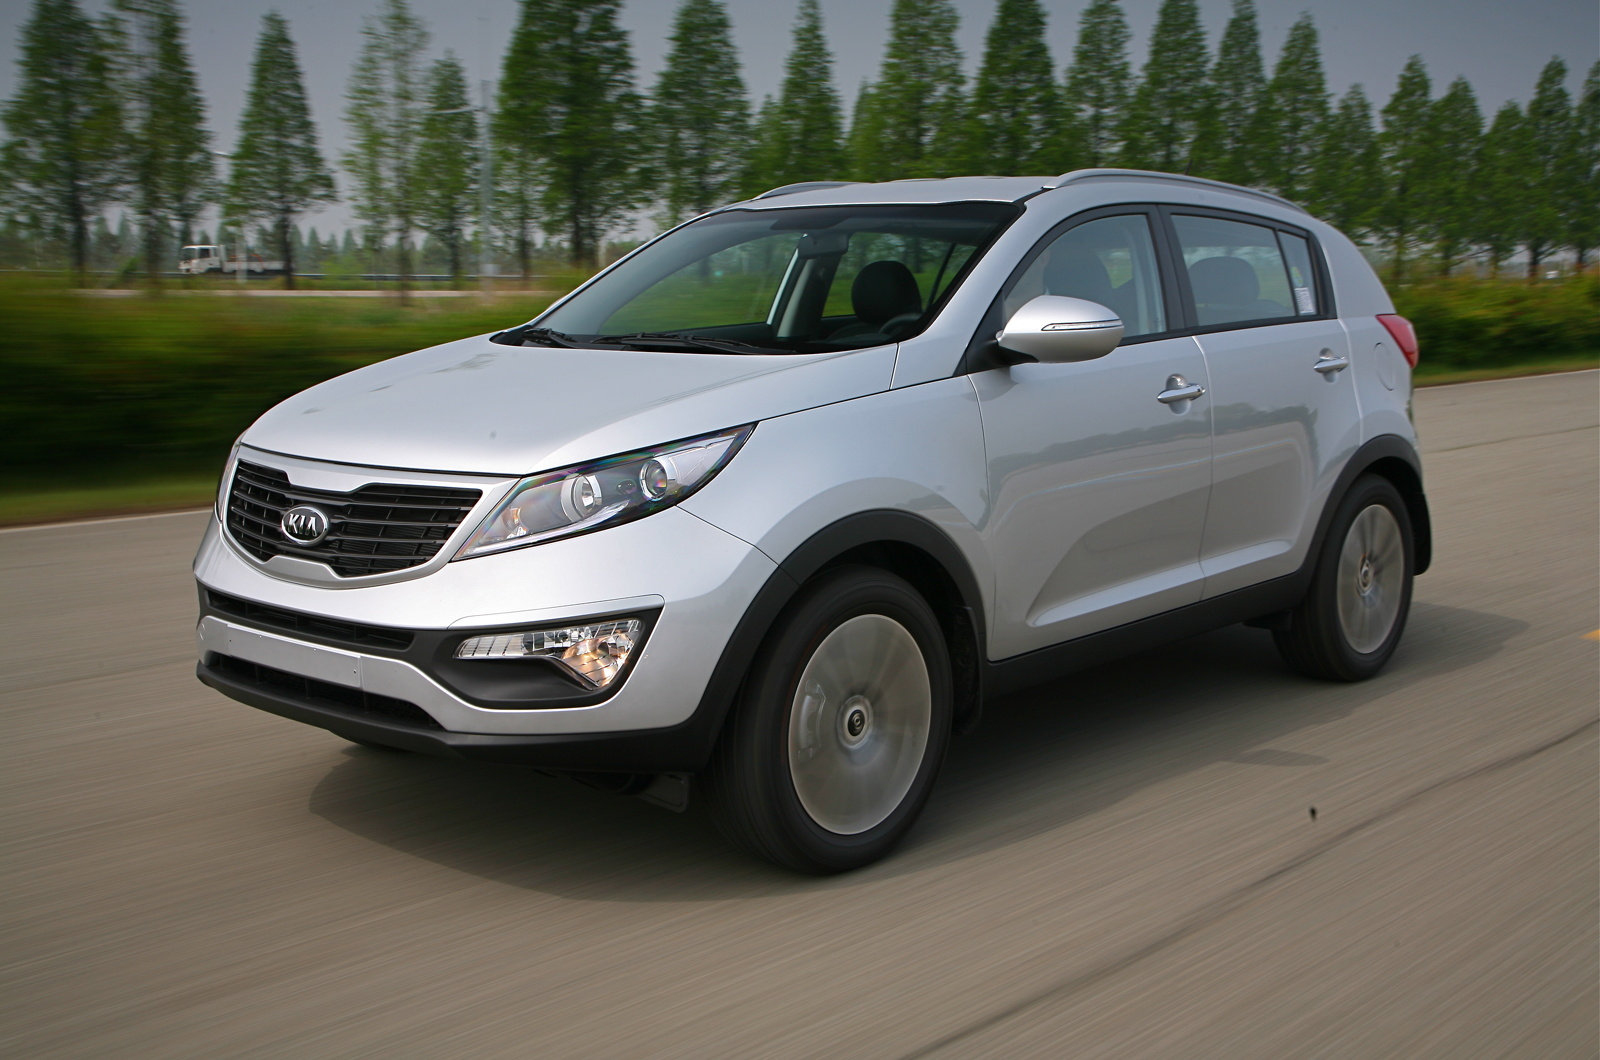 kia sportage 2 0 crdi 4x4 photos and comments www. Black Bedroom Furniture Sets. Home Design Ideas